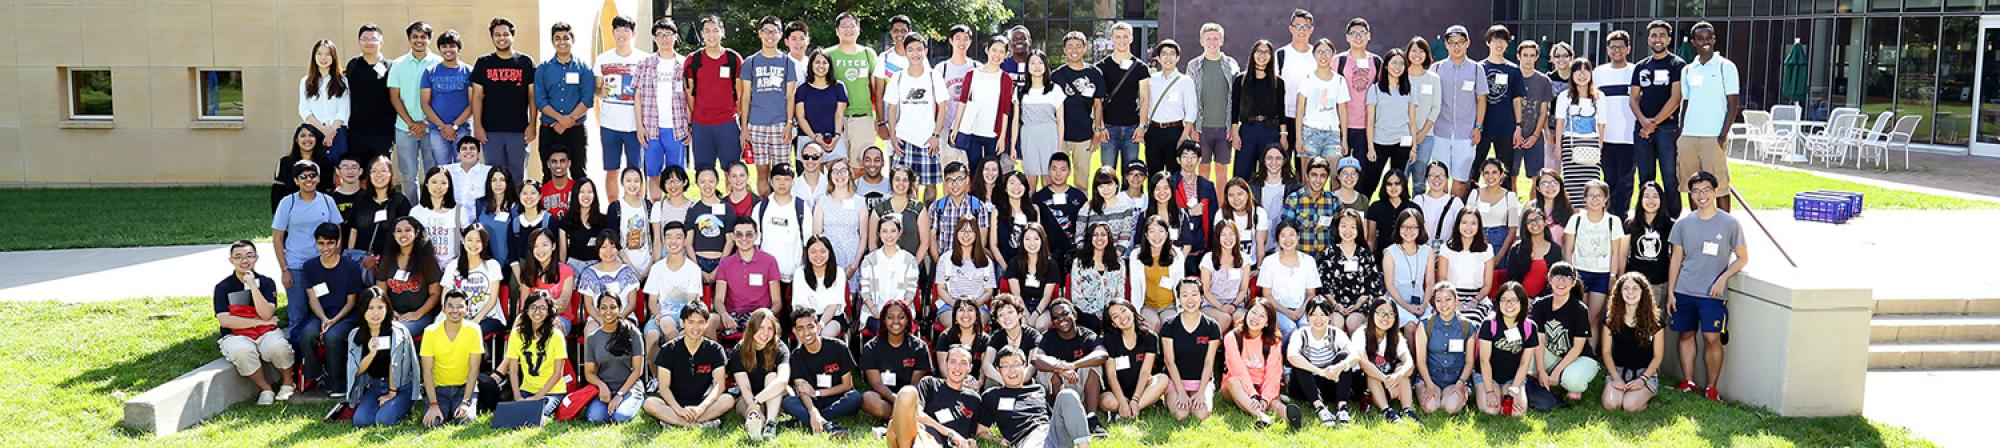 2016 Grinnell College International Pre-Orientation Program participants